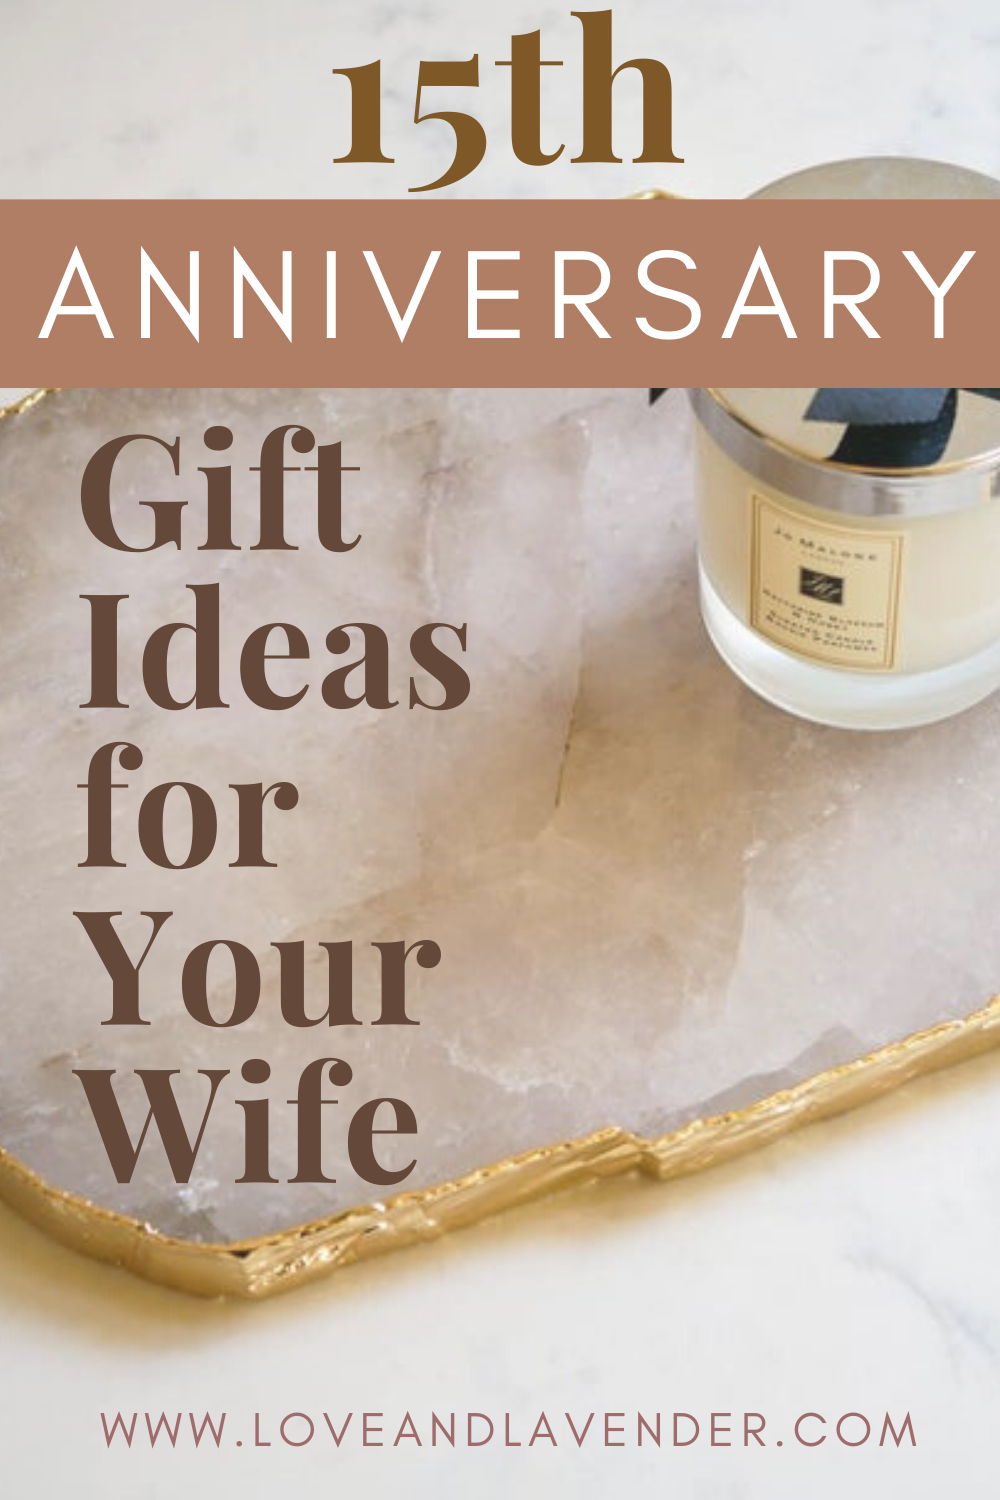 15th Anniversary Gift Ideas for your Wife15th